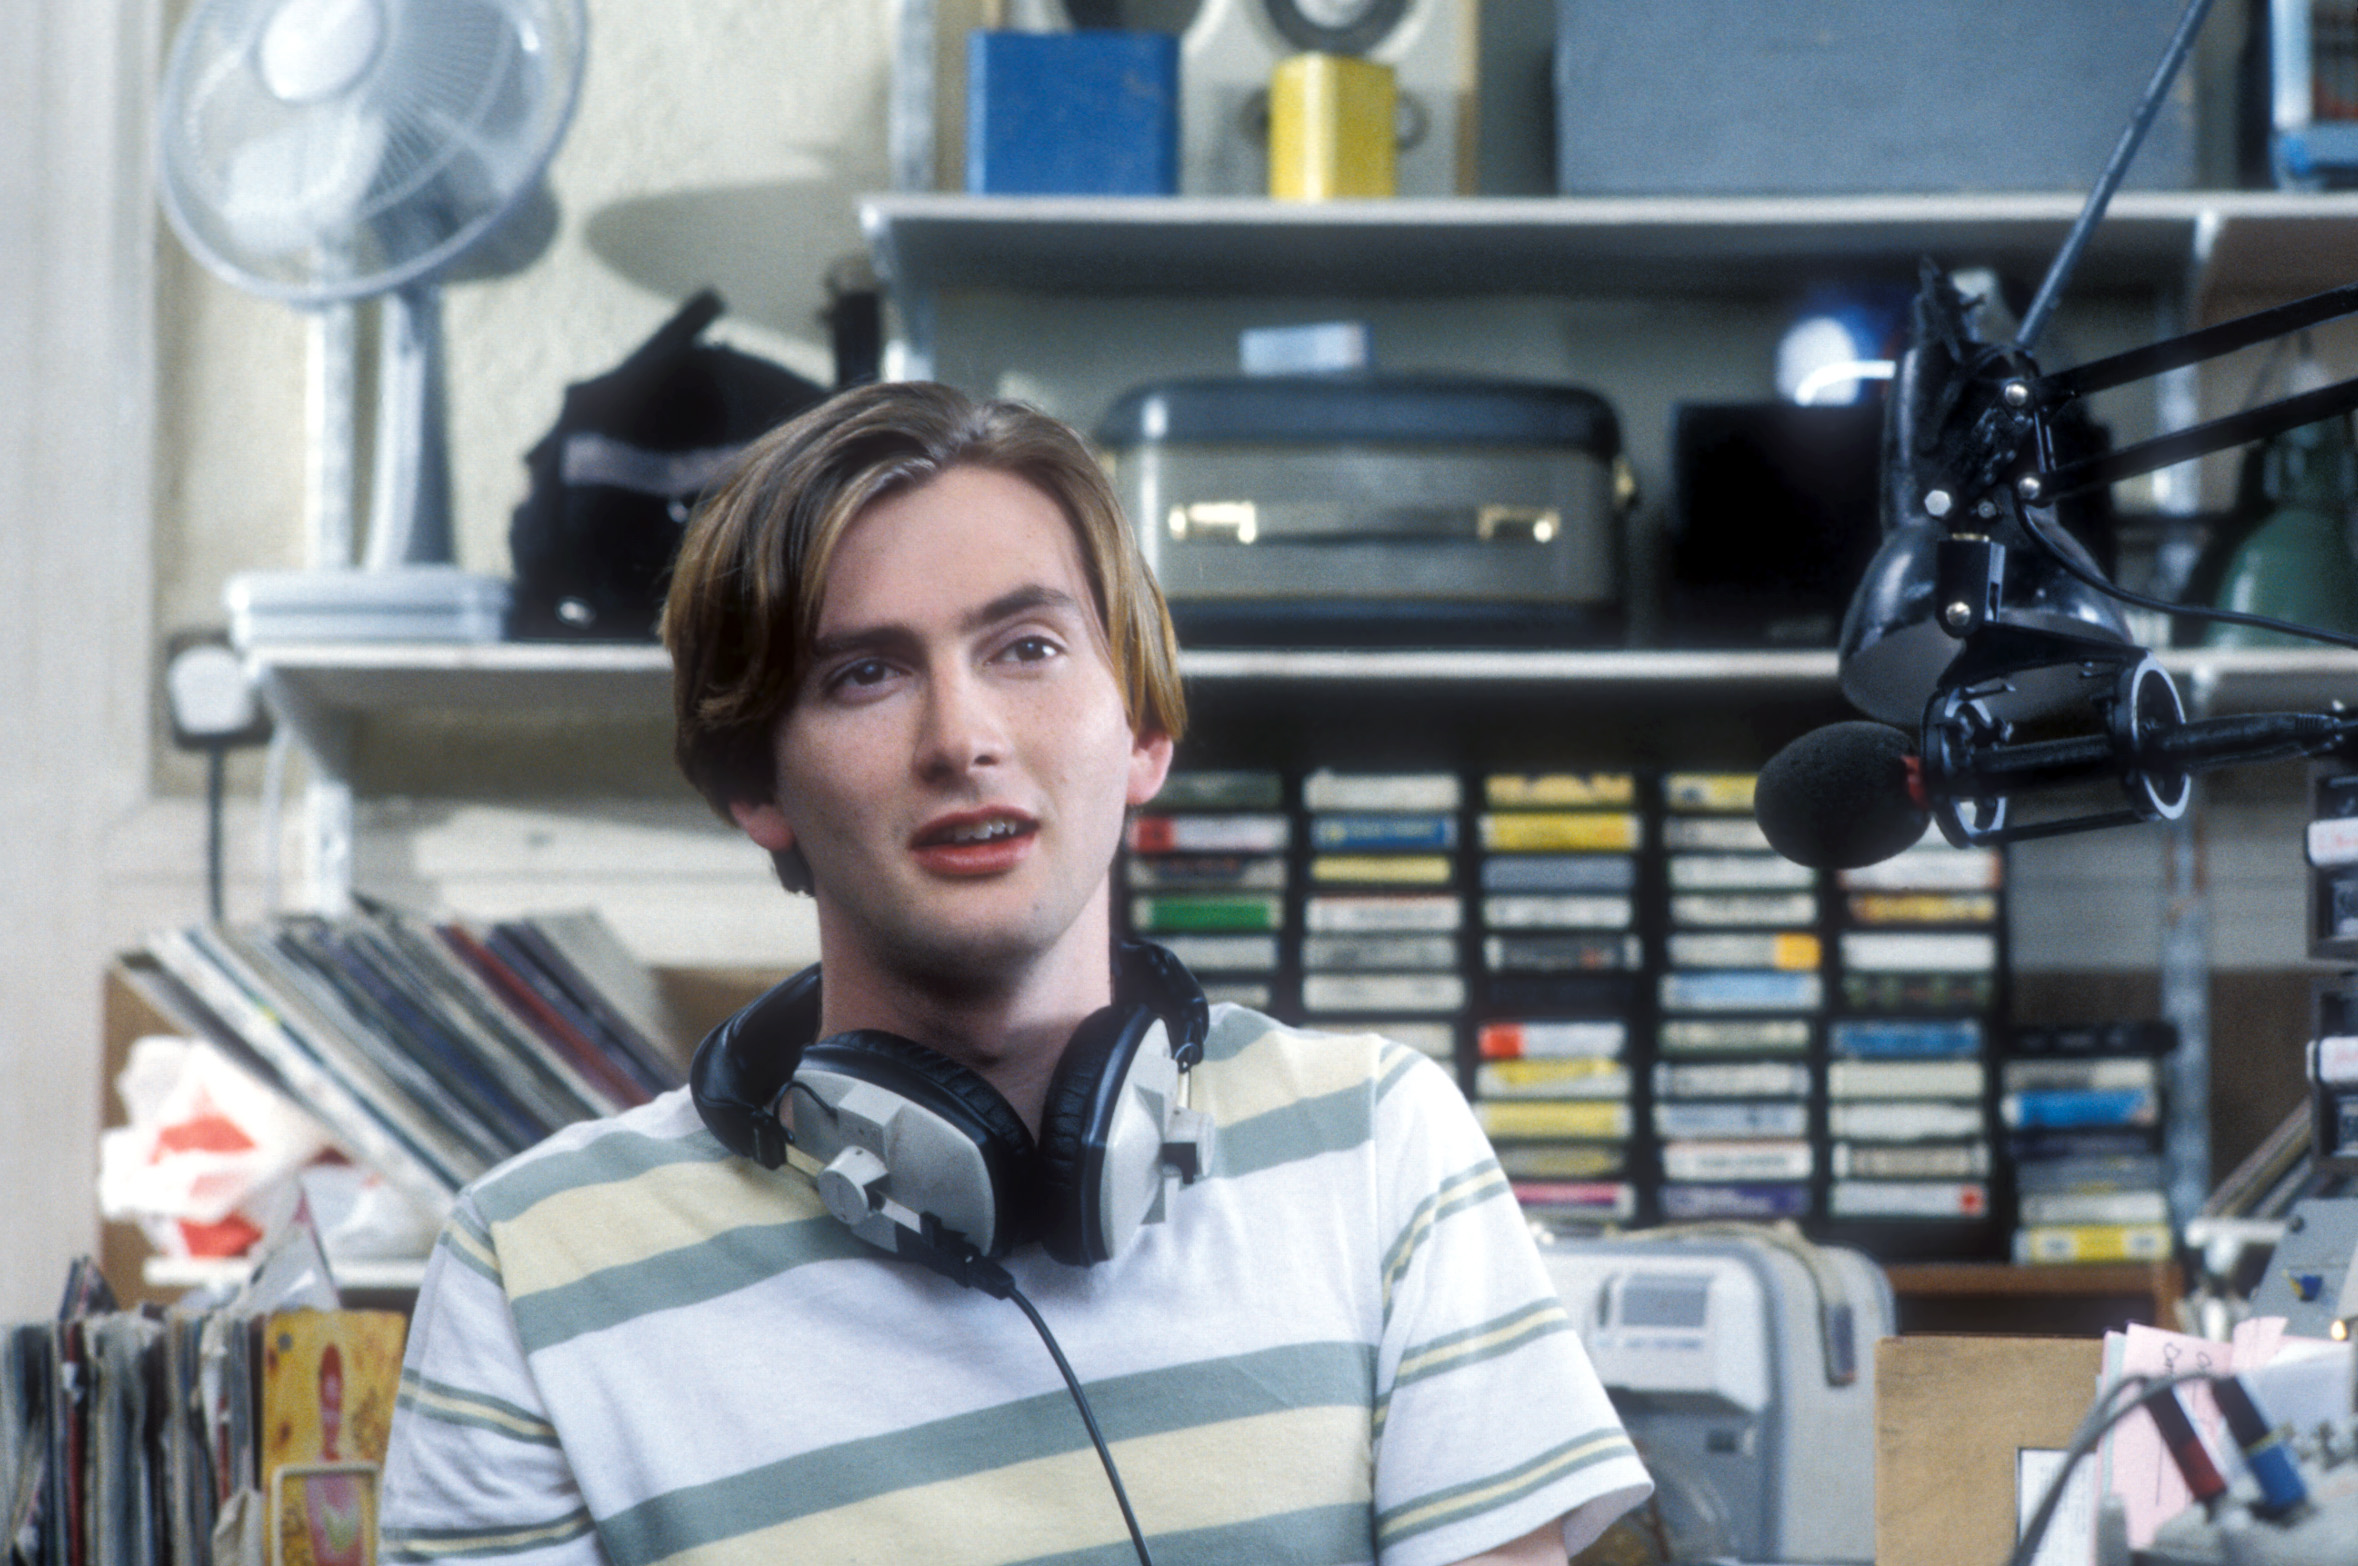 Wielding a Scottish accent as thick as canned haggis, a 23-year-old Tennant played a manic-depressive in the six-part BBC drama, Taking Over the Asylum. Watch clips.